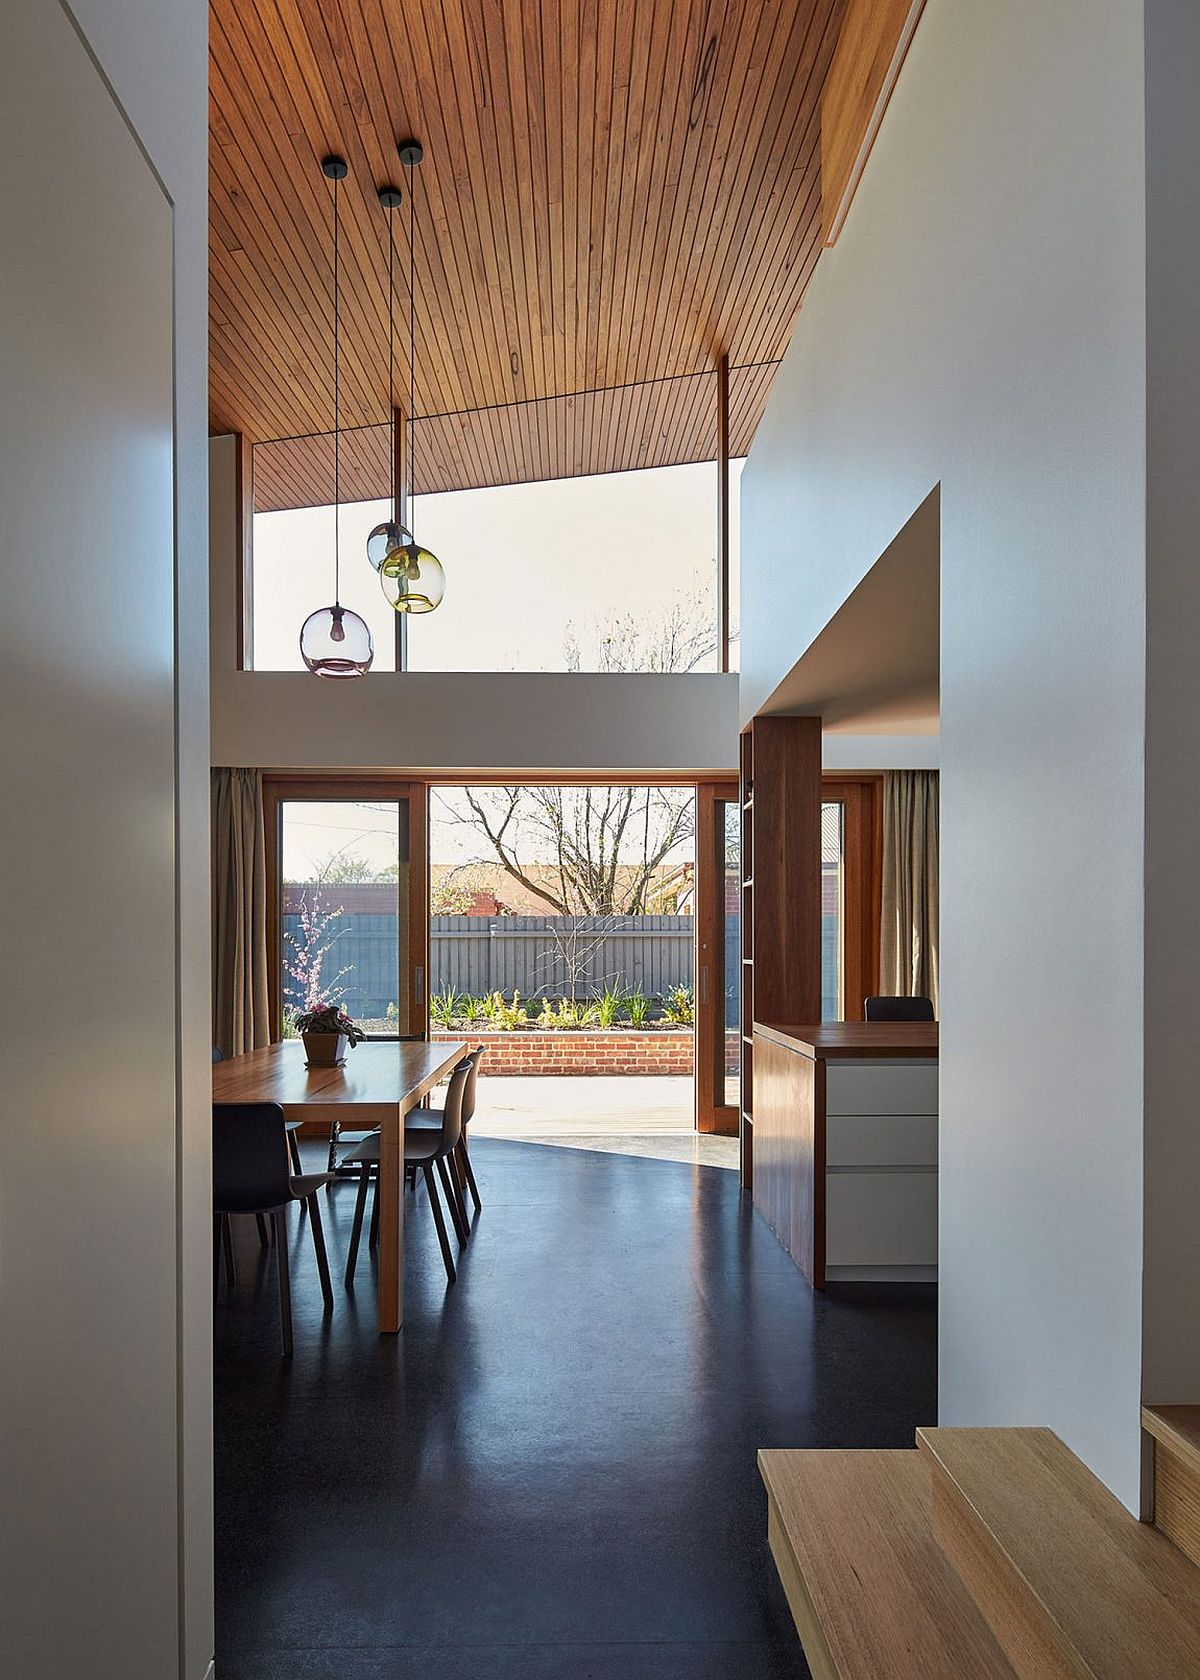 Double height ceiling gives the interior a spacious look